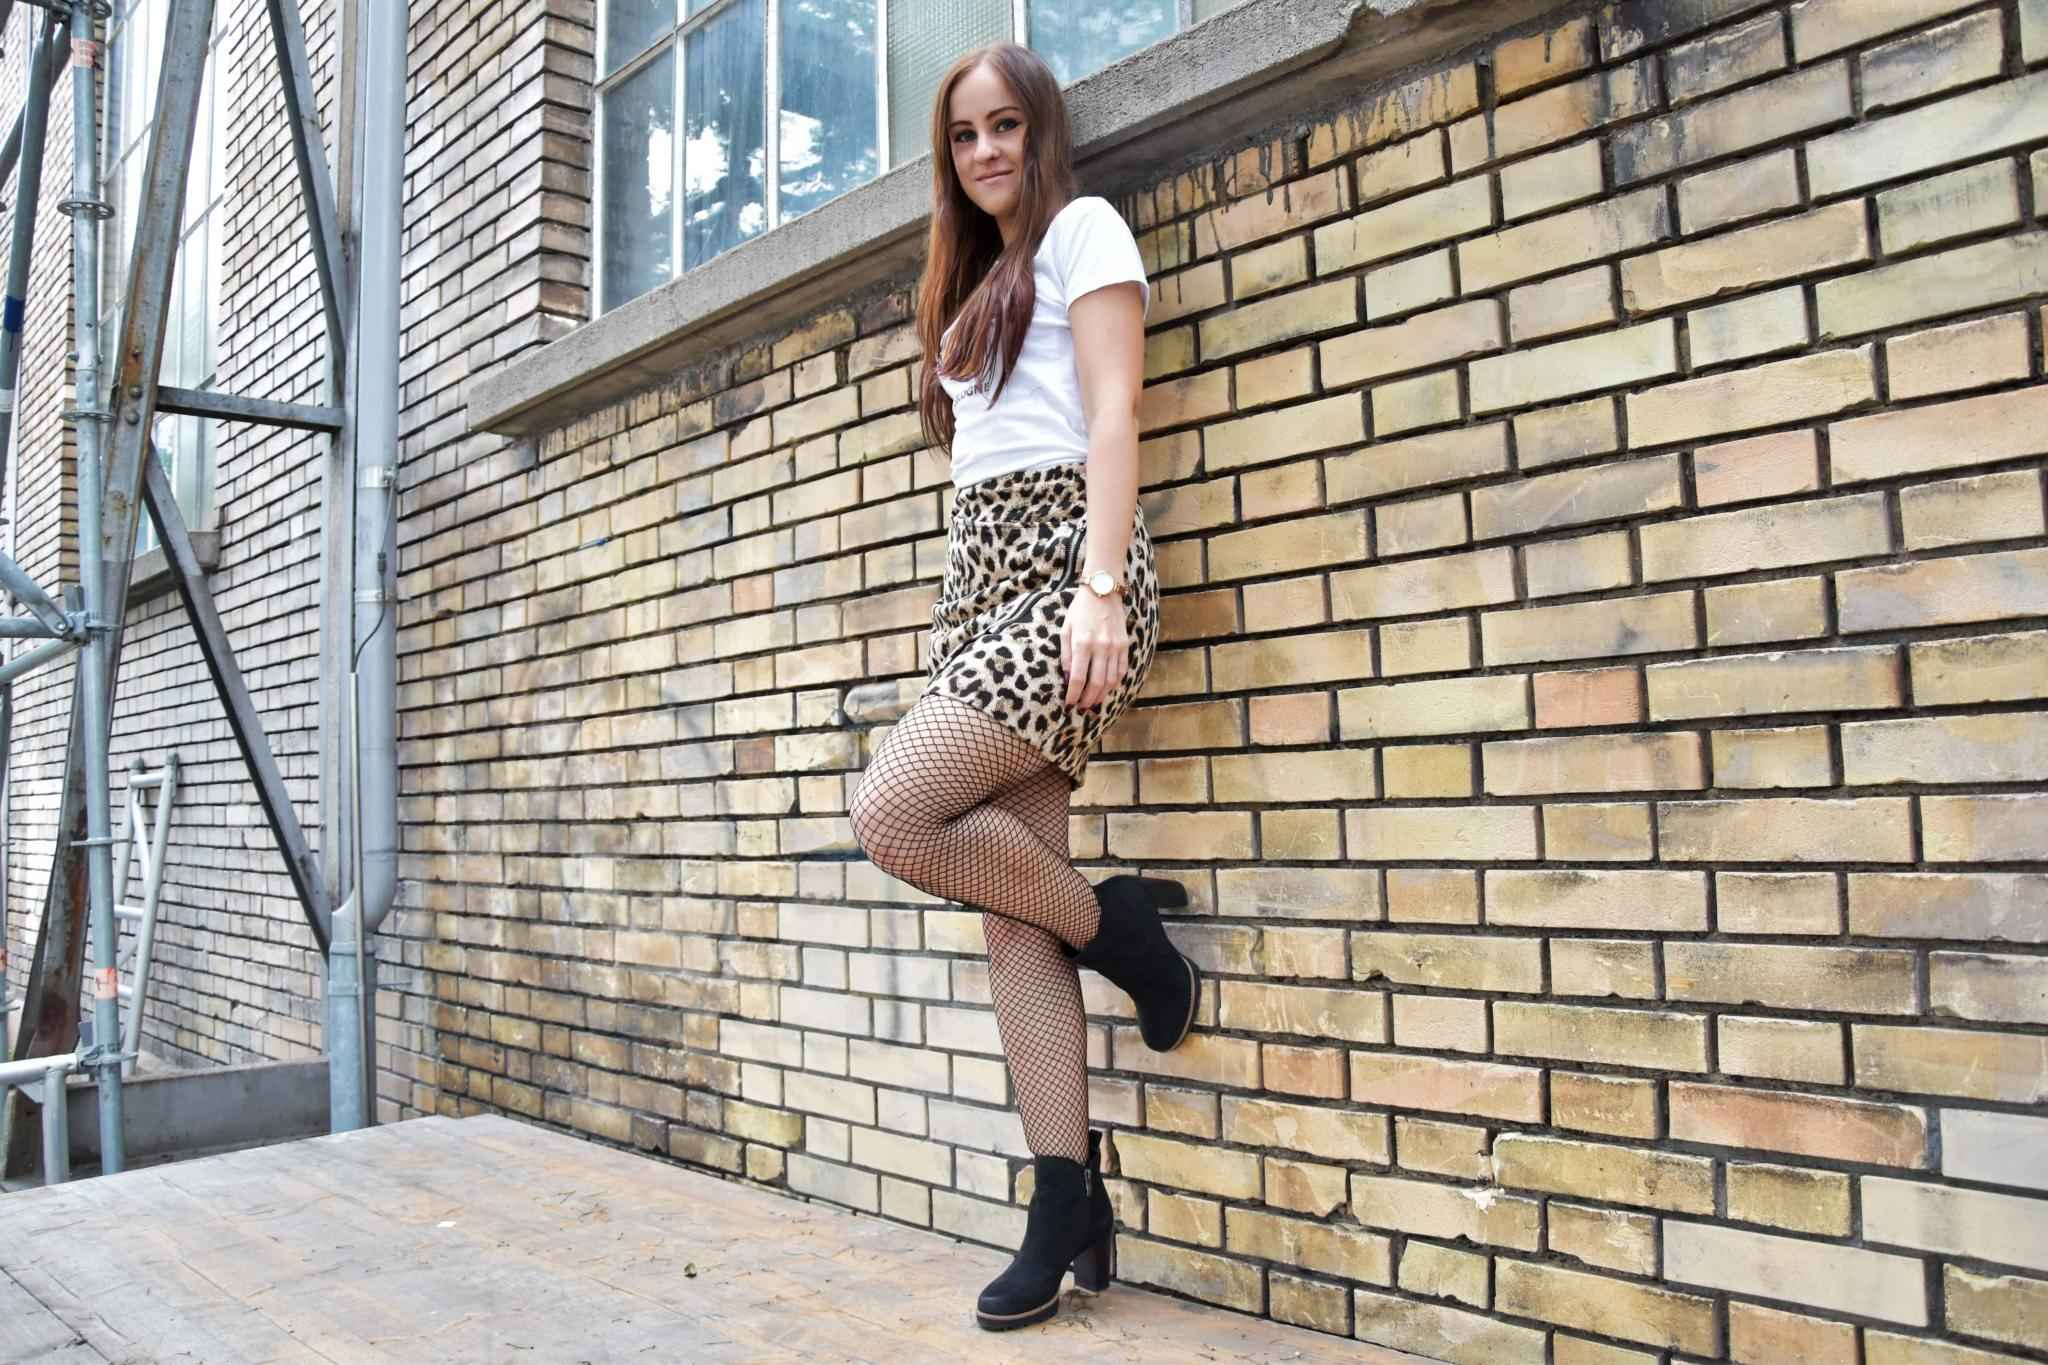 ootd, Fashion, Fashionblogger, Fashionblog, H&M, Outfit Leopard Mini Skirt, Fishnet Tights, Statement Shirt